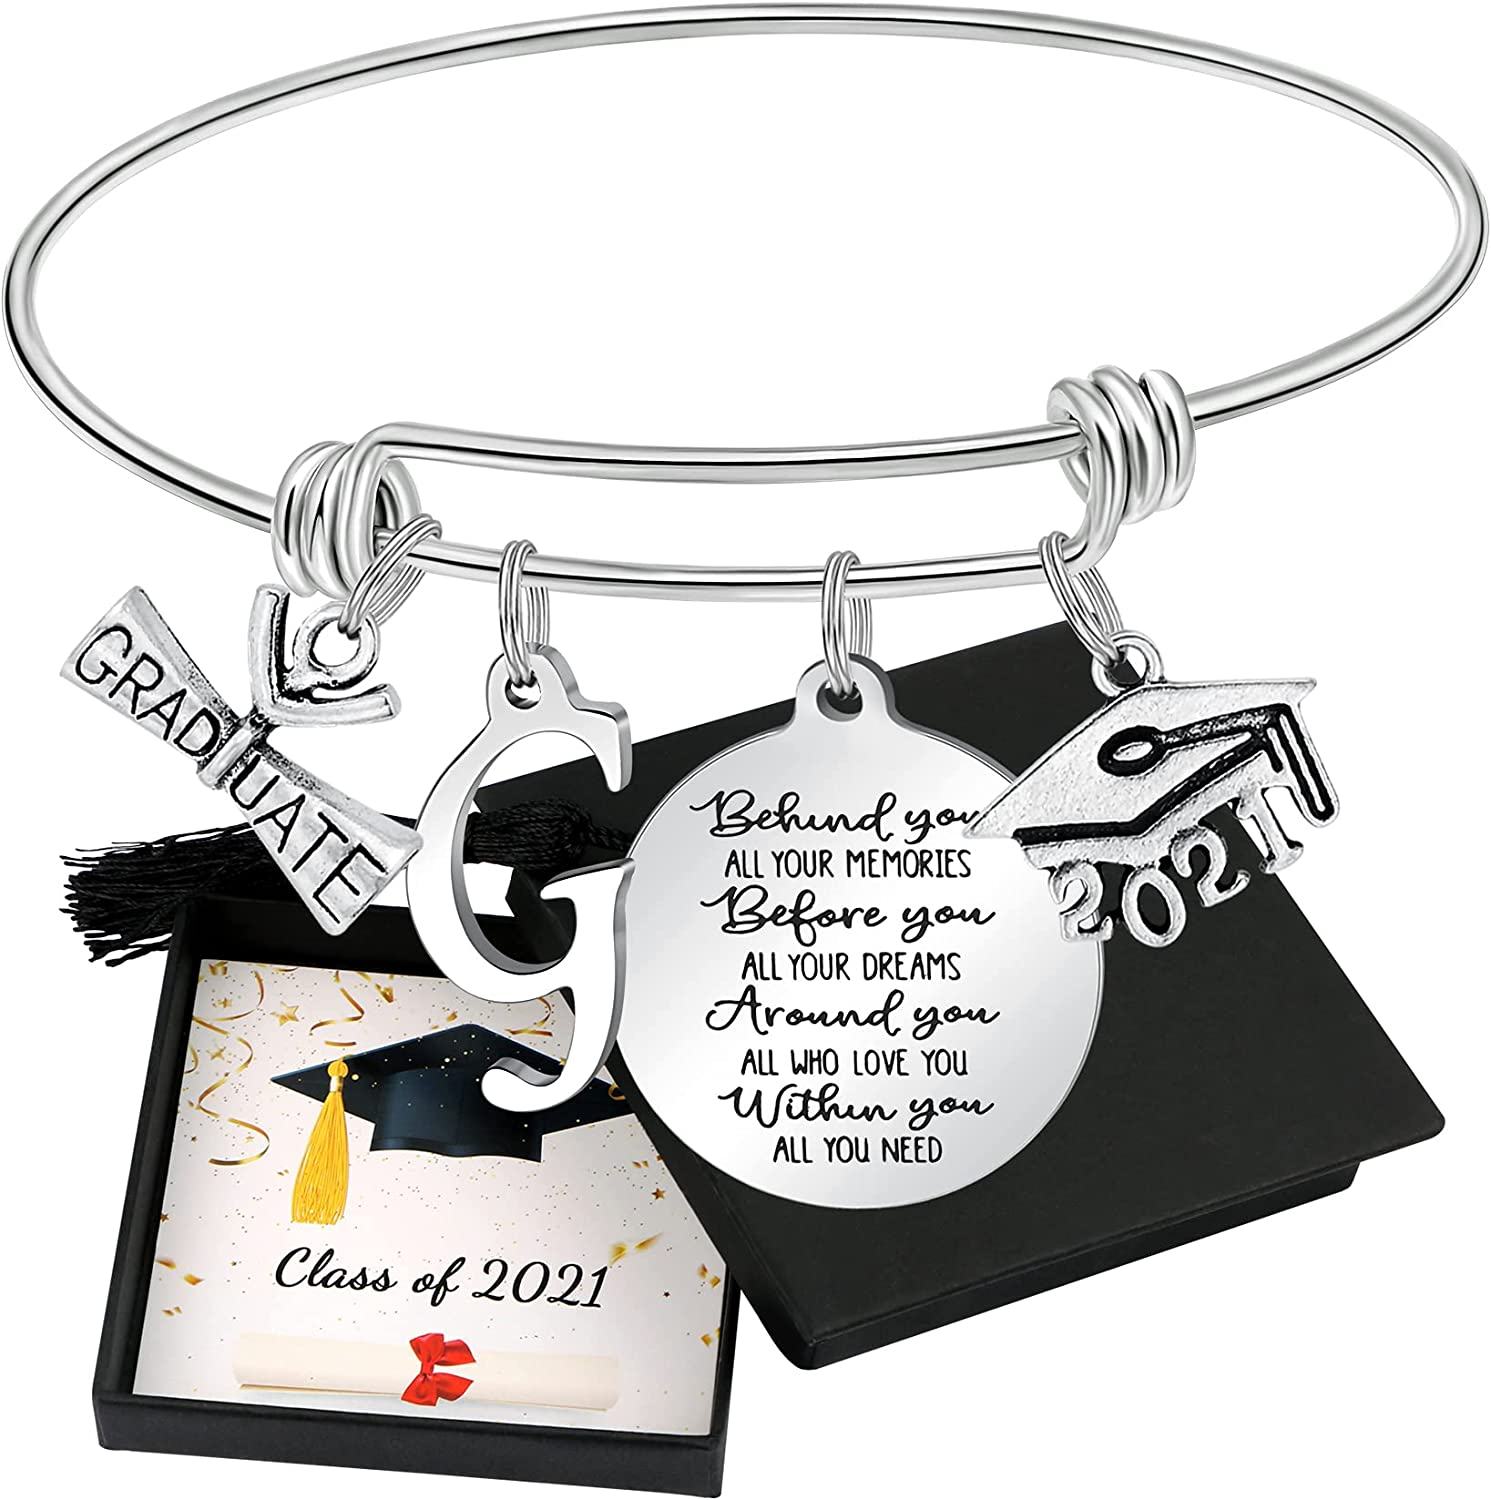 Graduation Gift For Class of 2021 Graduates Graduation Gifts for Her Inspirational Initial Letter Bangel Bracelets for Niece Girlfriend Granddaughter Daughter Friends